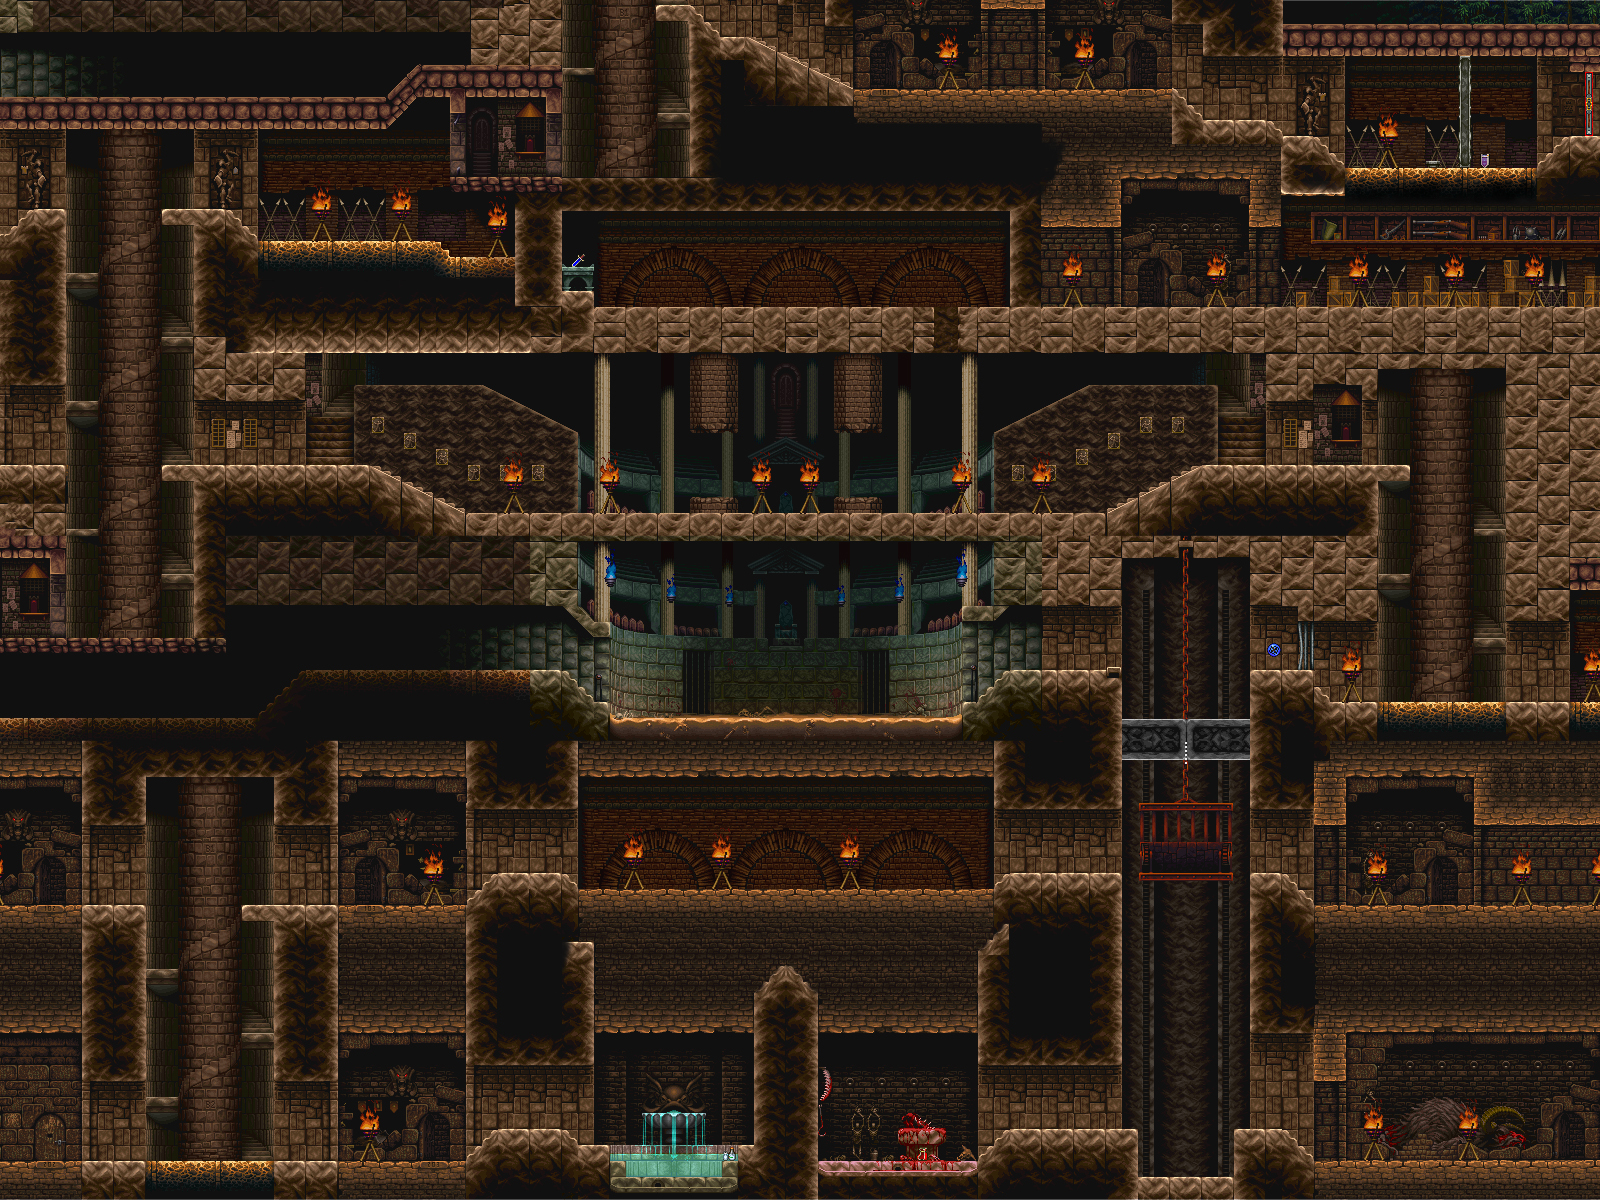 Free Download Castlevania Symphony Of The Night Wallpaper And